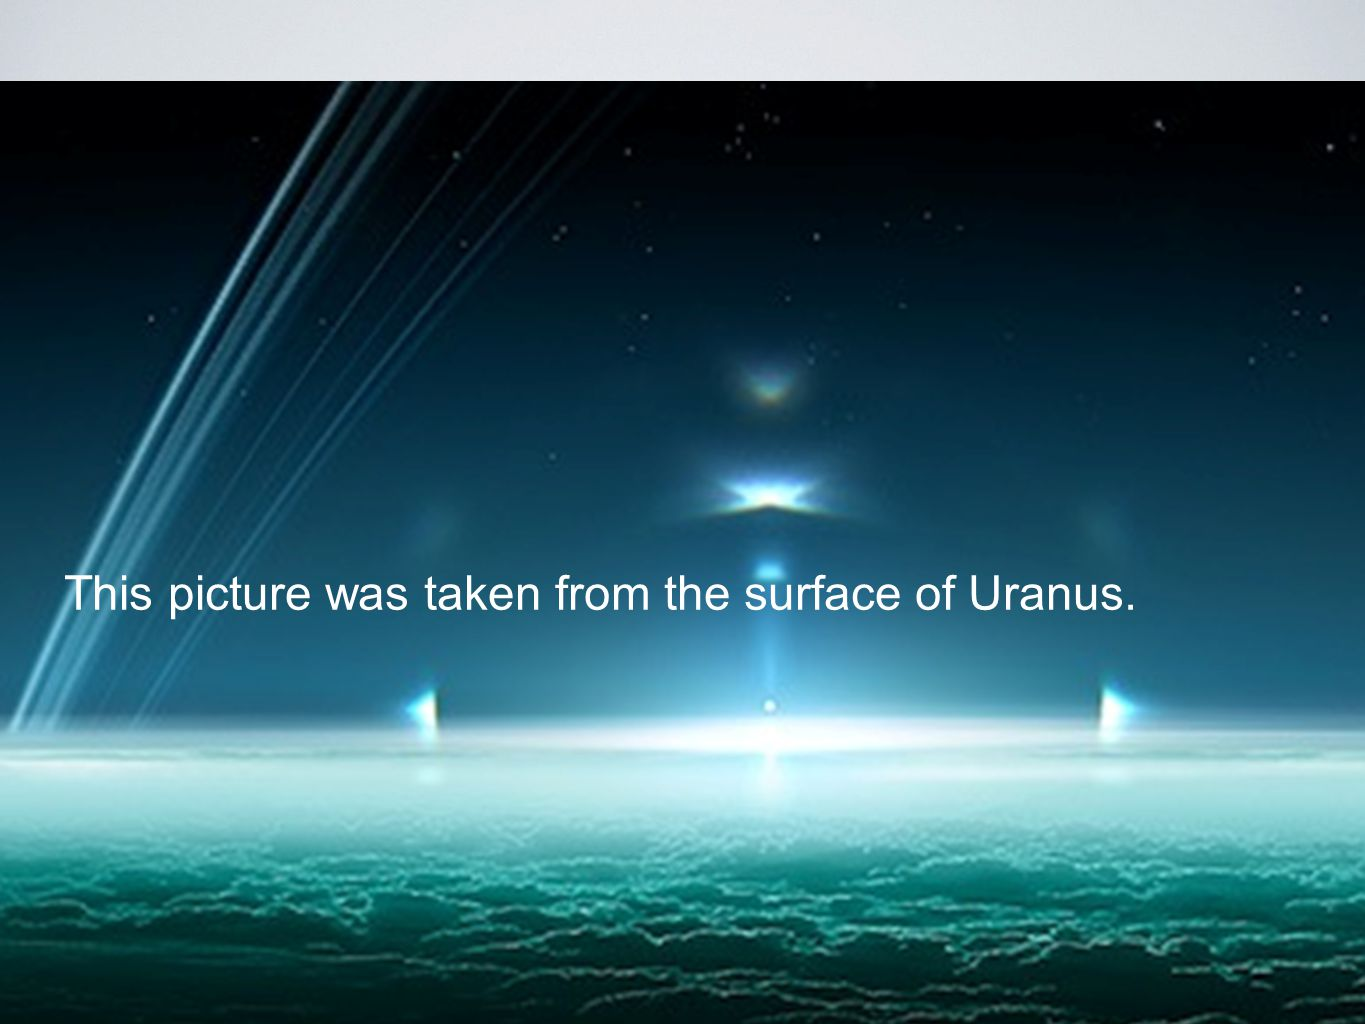 This picture was taken from the surface of Uranus.